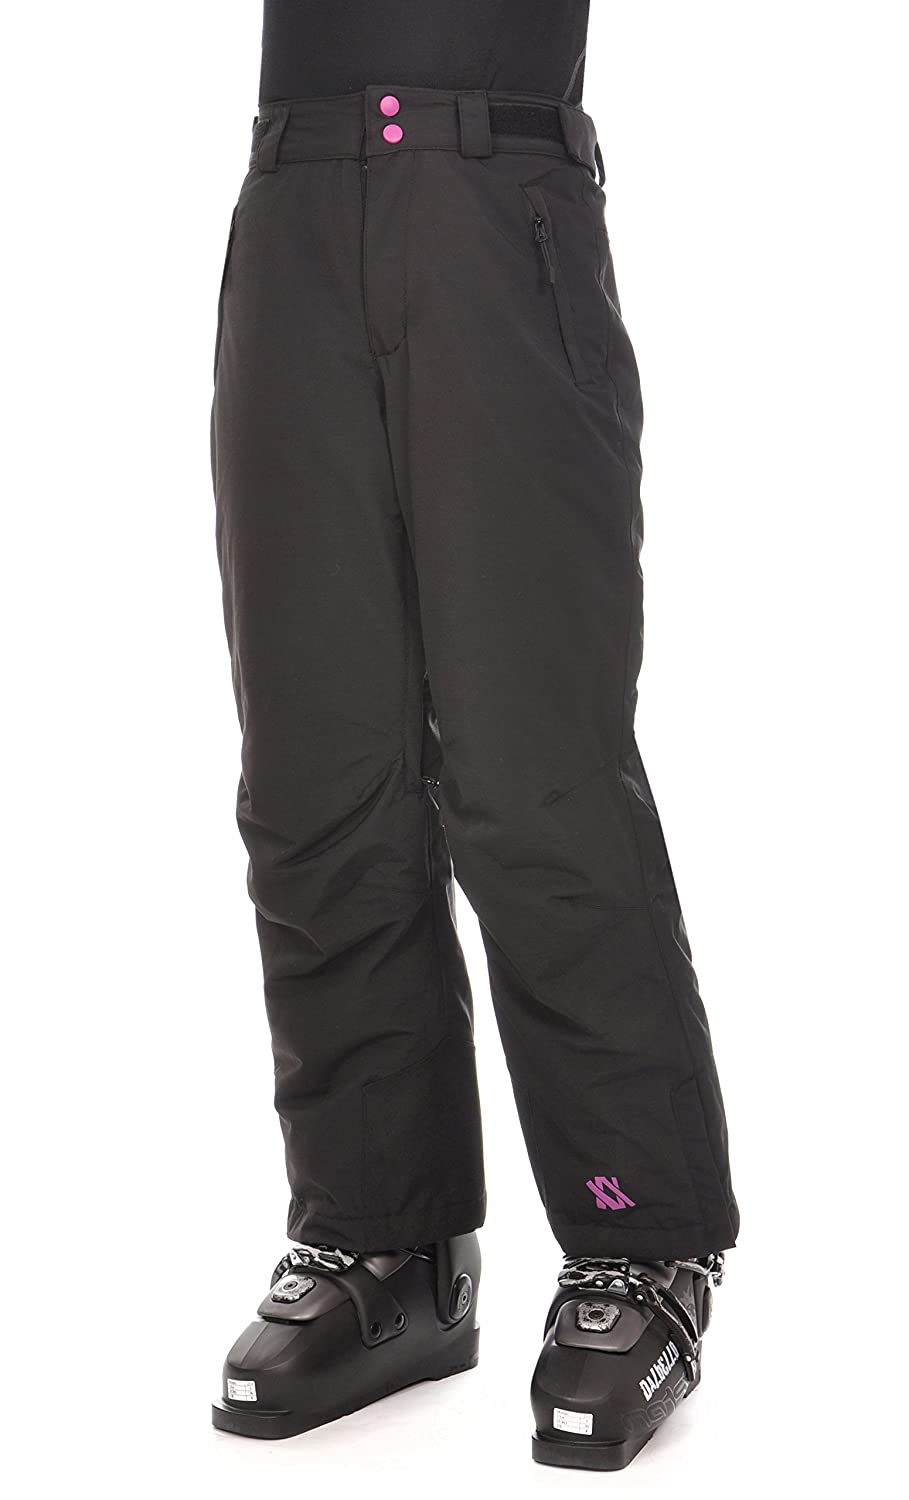 Völkl Performance Wear Kinder Skihose Starlet Pants